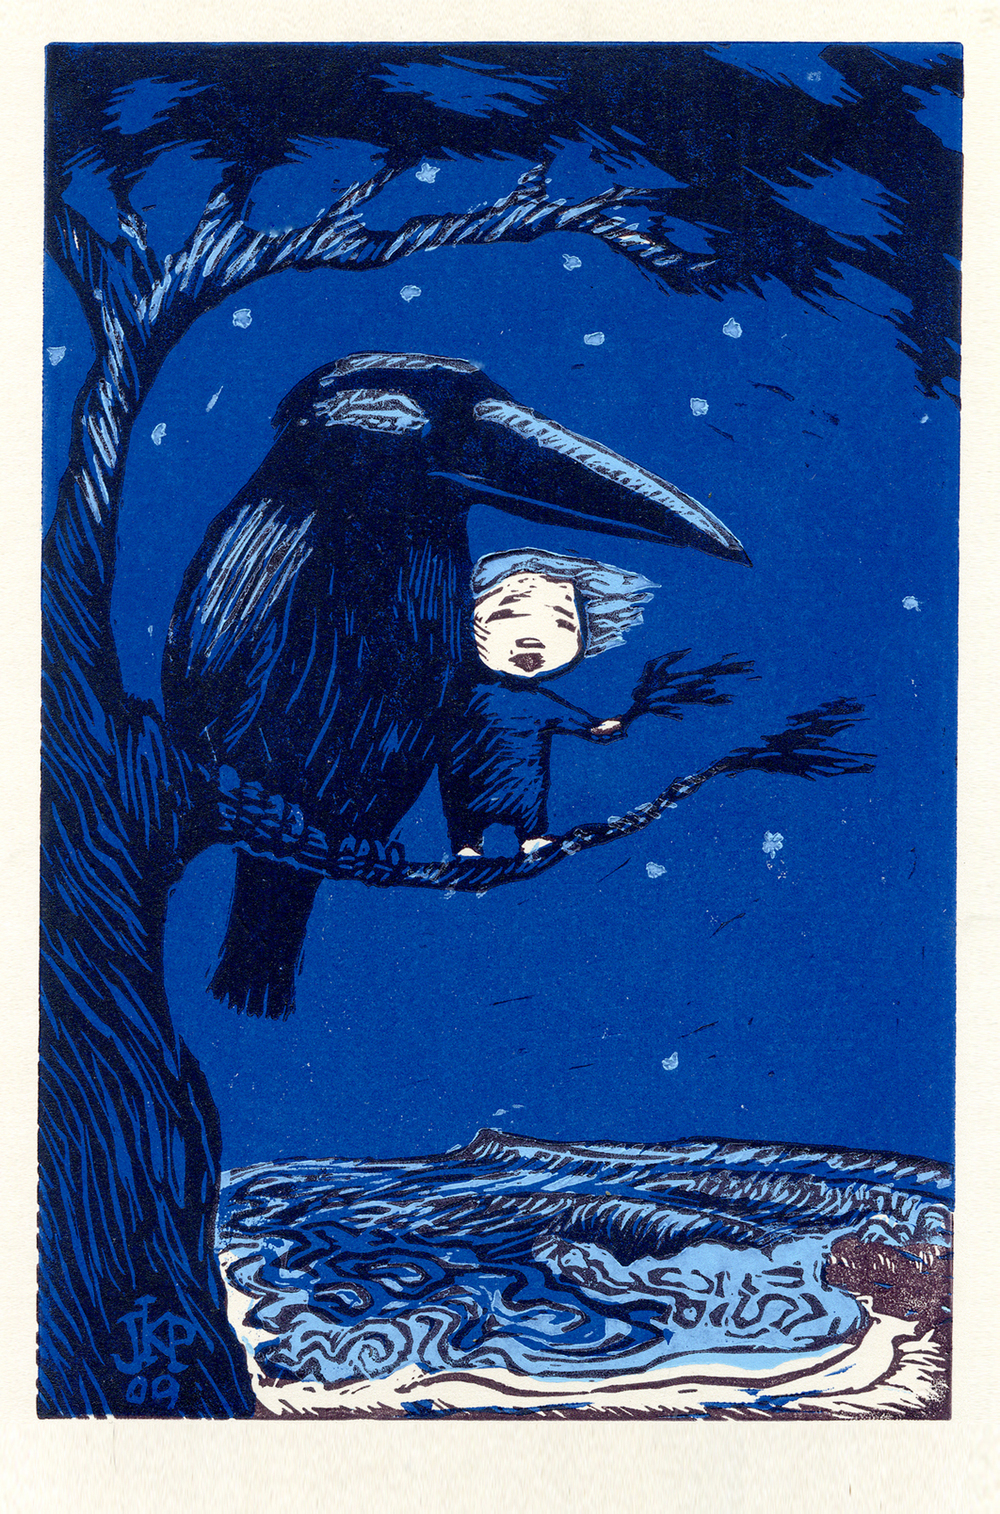 Crow, Boy, Ocean / 3 color linoleum block print